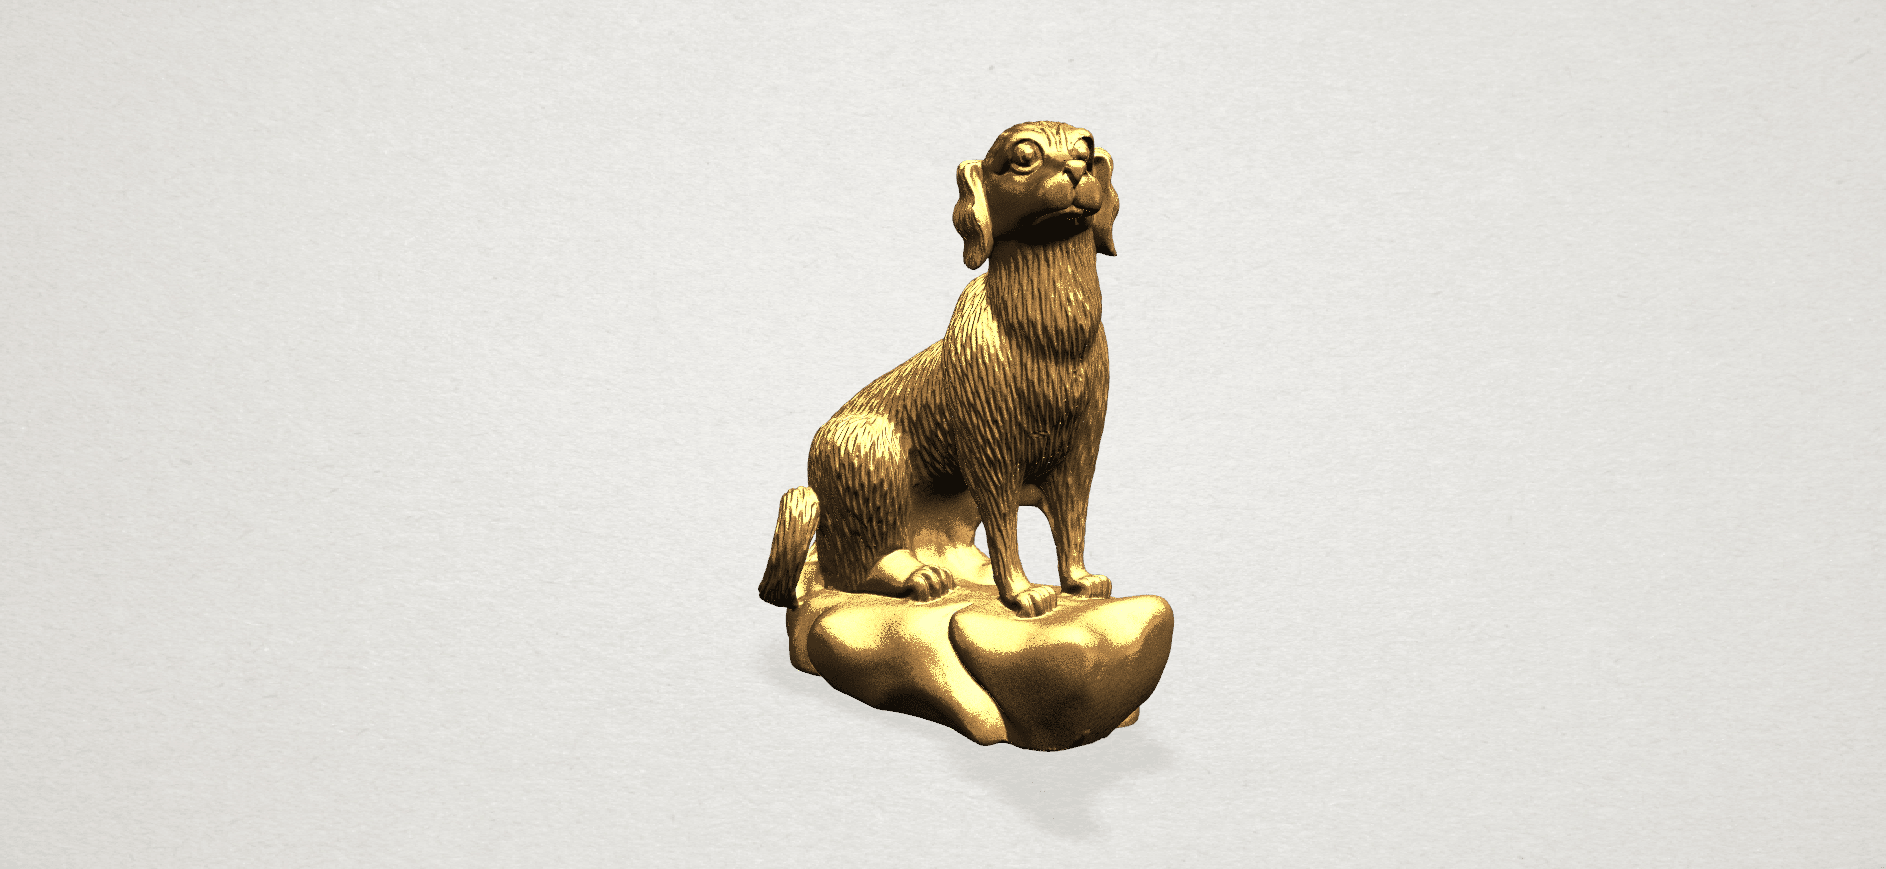 ZChinese Horoscope11-B04.png Download free STL file Chinese Horoscope 11 Dog • 3D print design, GeorgesNikkei